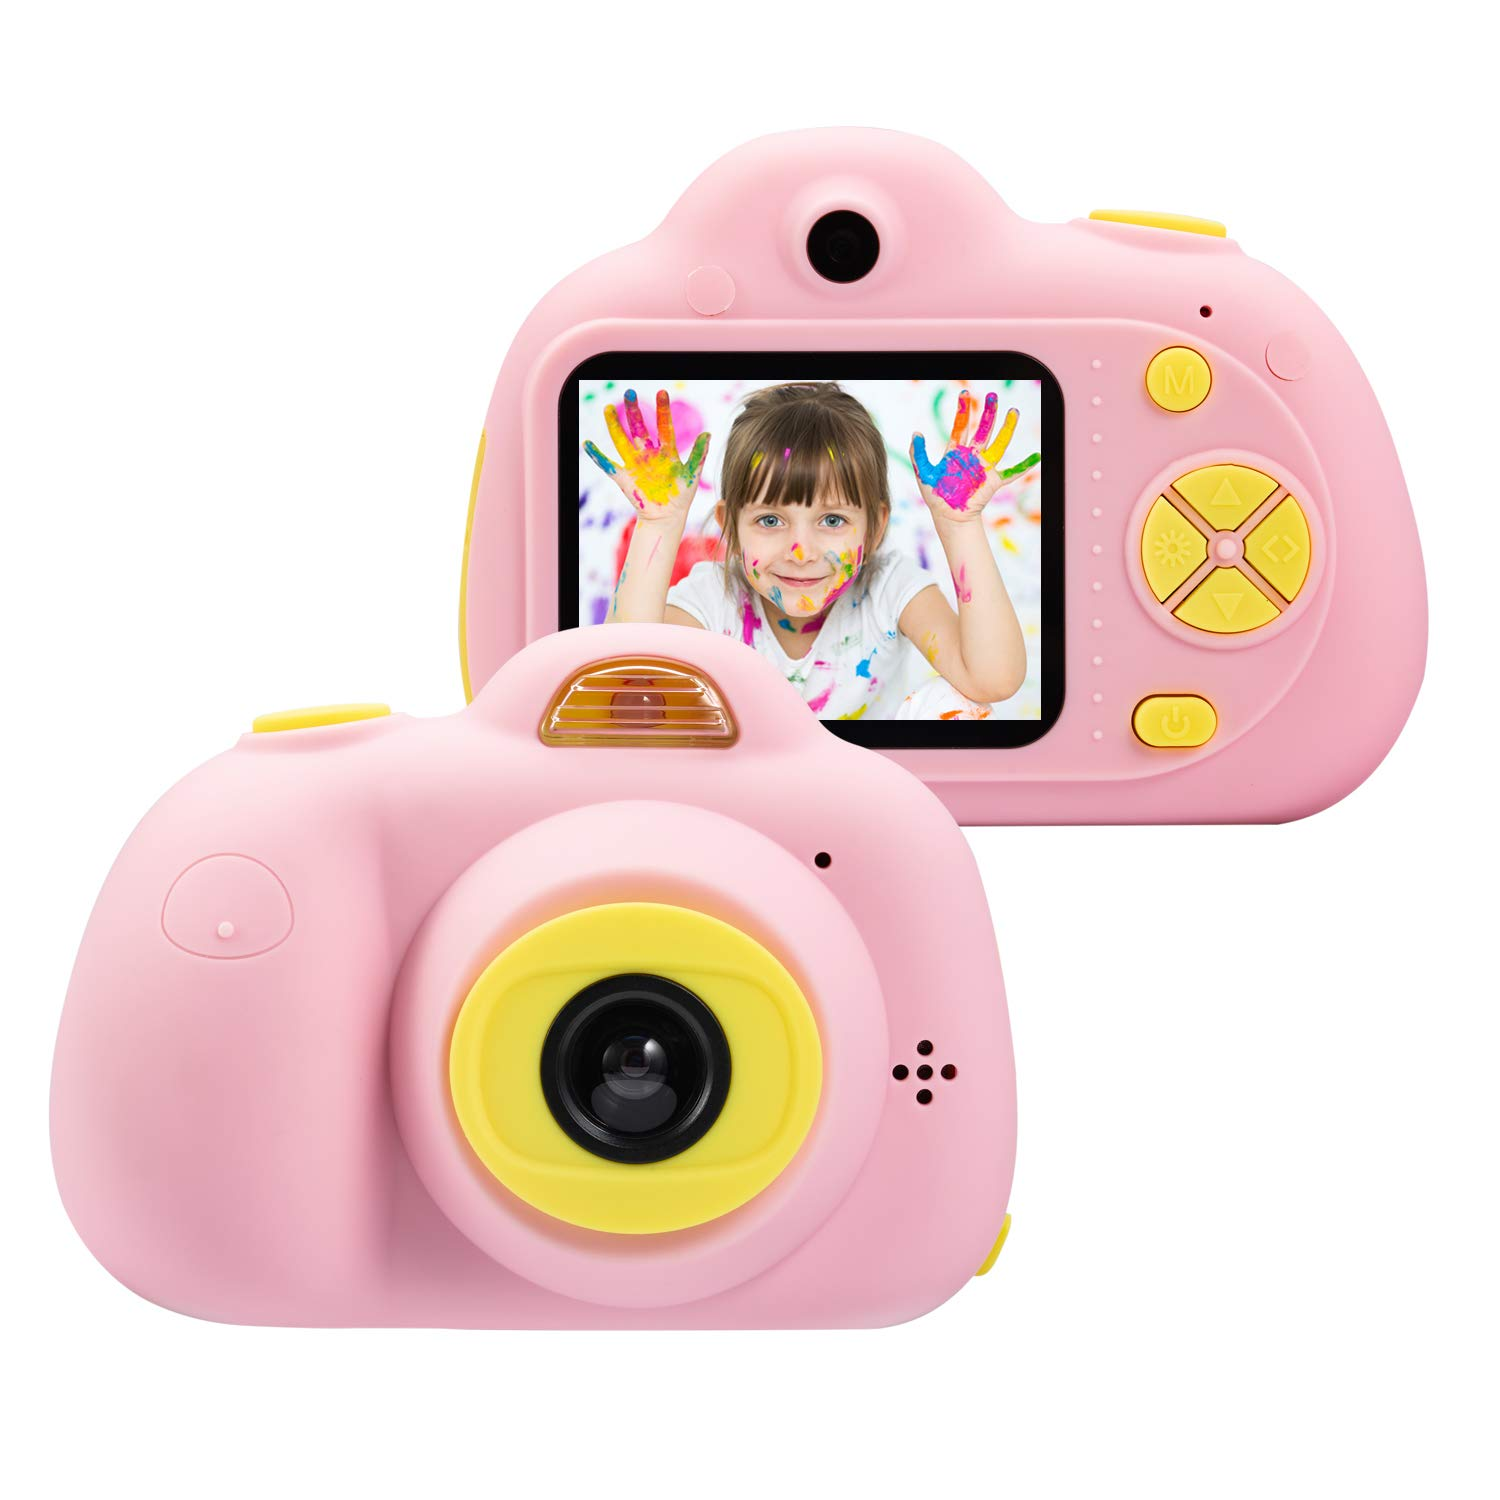 omzer Kids Camera for 4-8 Year Old Girls, Shockproof Cameras Great Mini Child Camcorder for Little Girl with Soft Silicone Shell for Outdoor Play,Pink(16G SD Card Included)